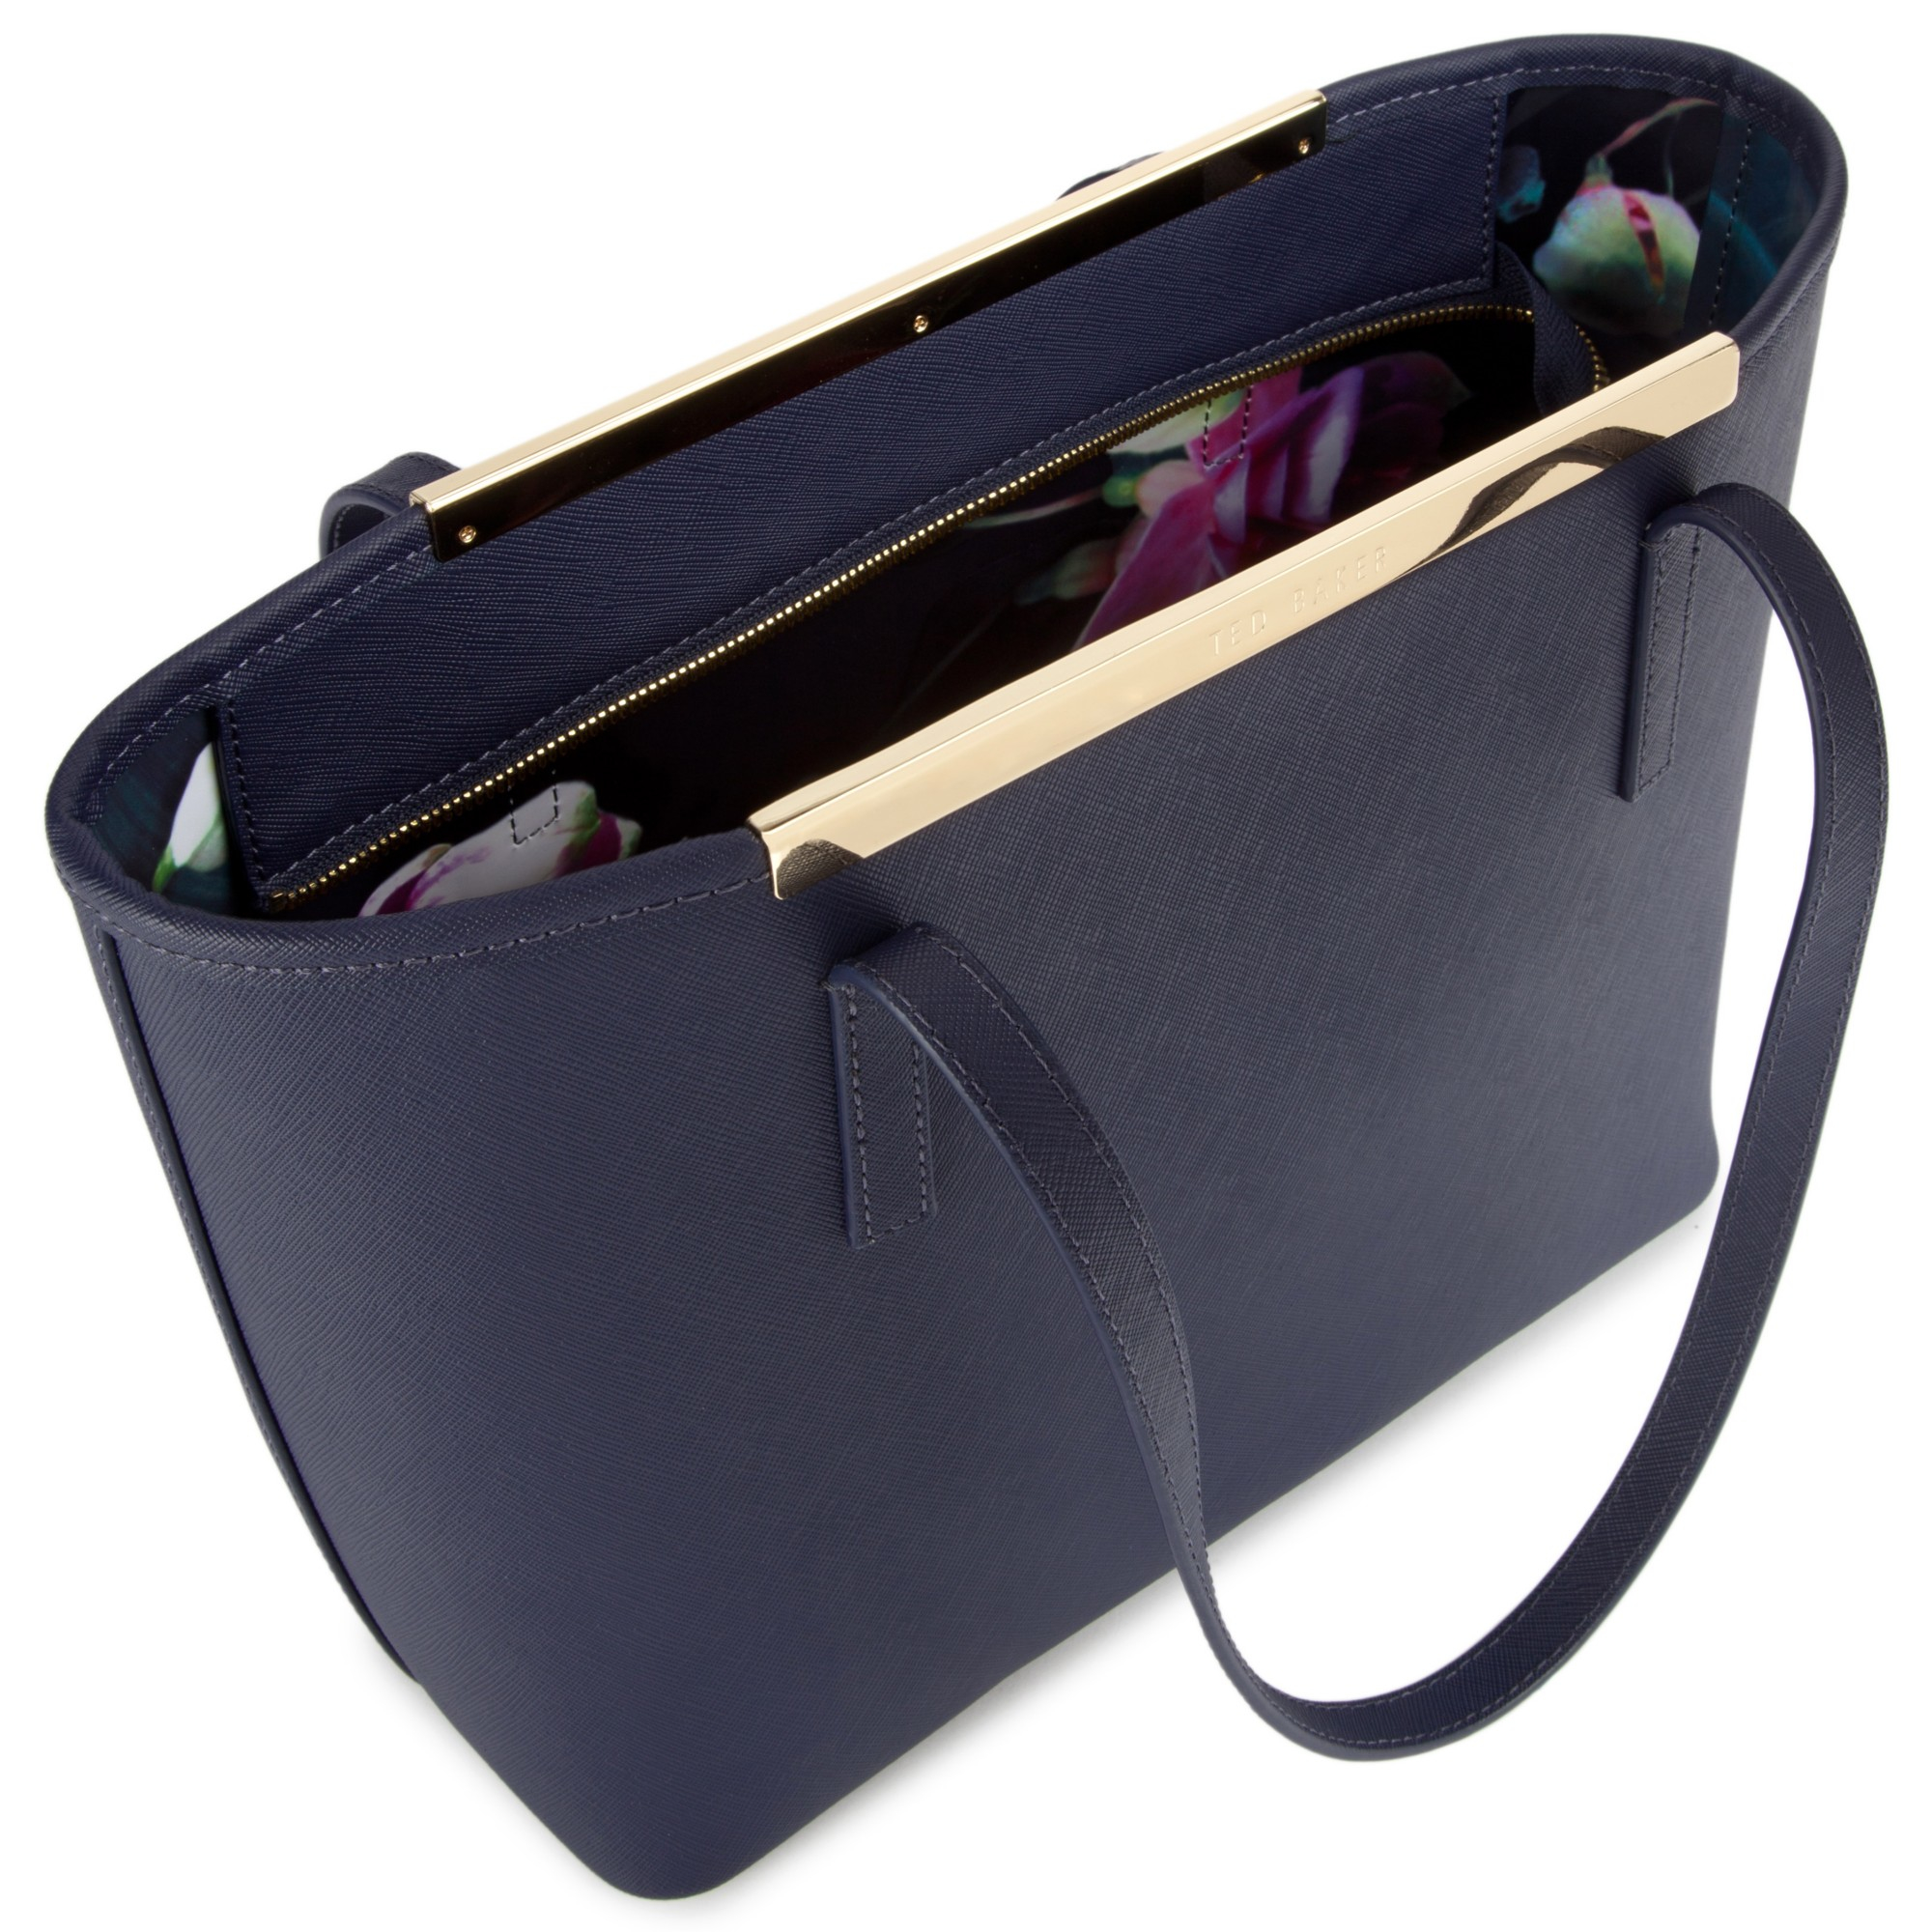 1b1941e5a Ted Baker Alyssaa Small Leather Tote Bag Dark Blue | City of Kenmore ...